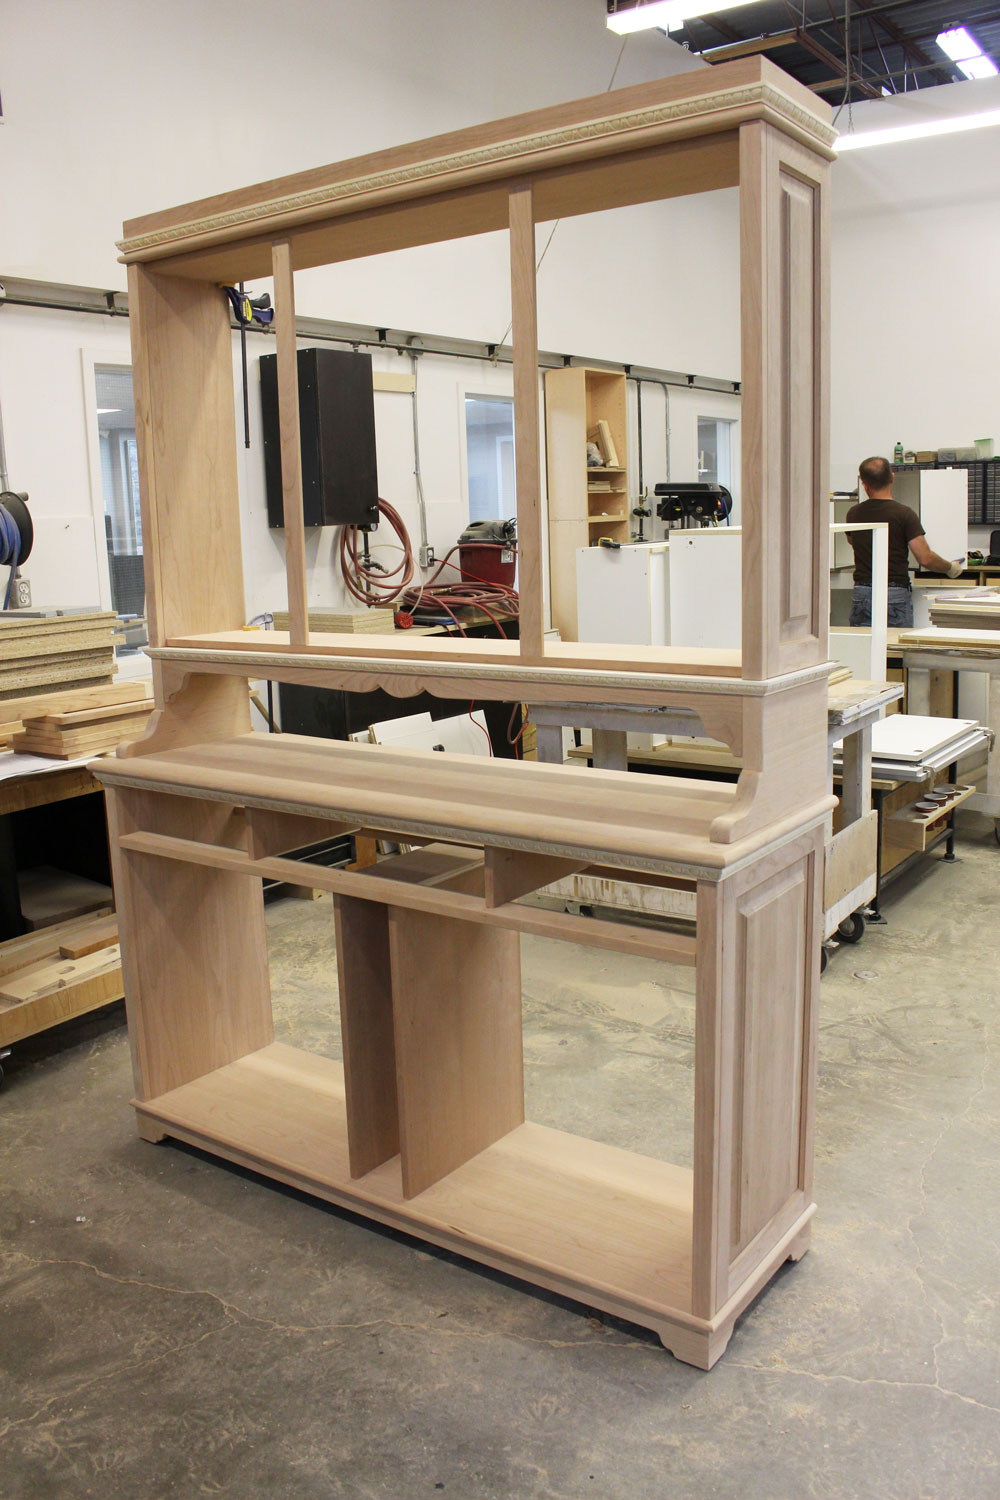 CABINET DURING THE BUILD